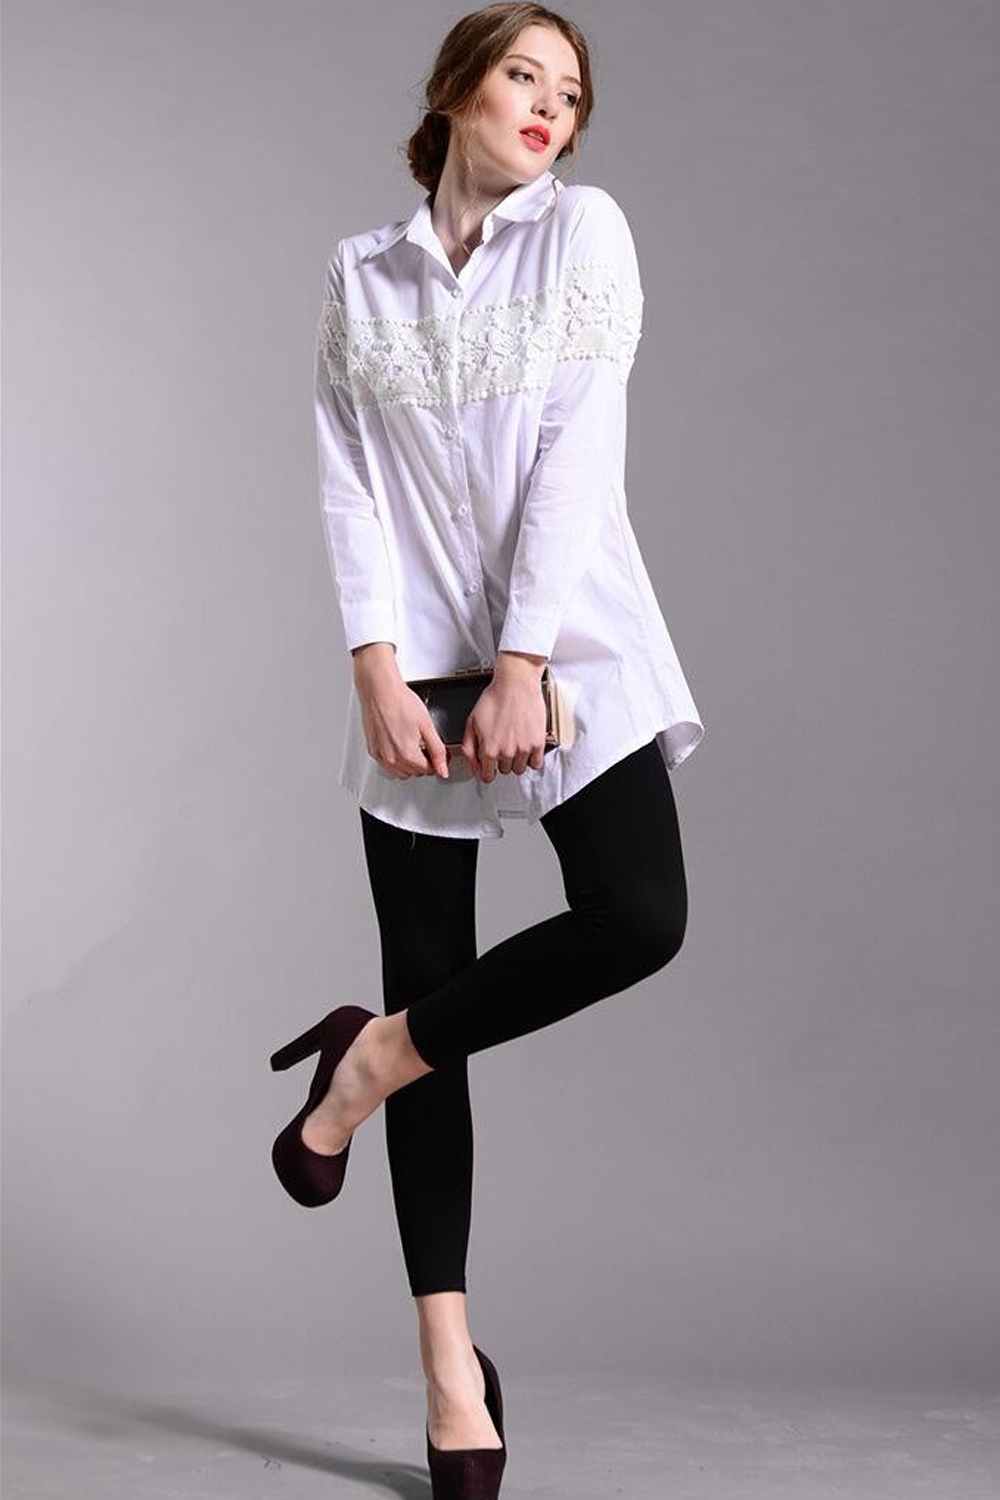 69a6dd917c UNOMATCH WOMEN LONG SLEEVES PLUS SIZE SHIRT AND BLOUSE WHITE ...